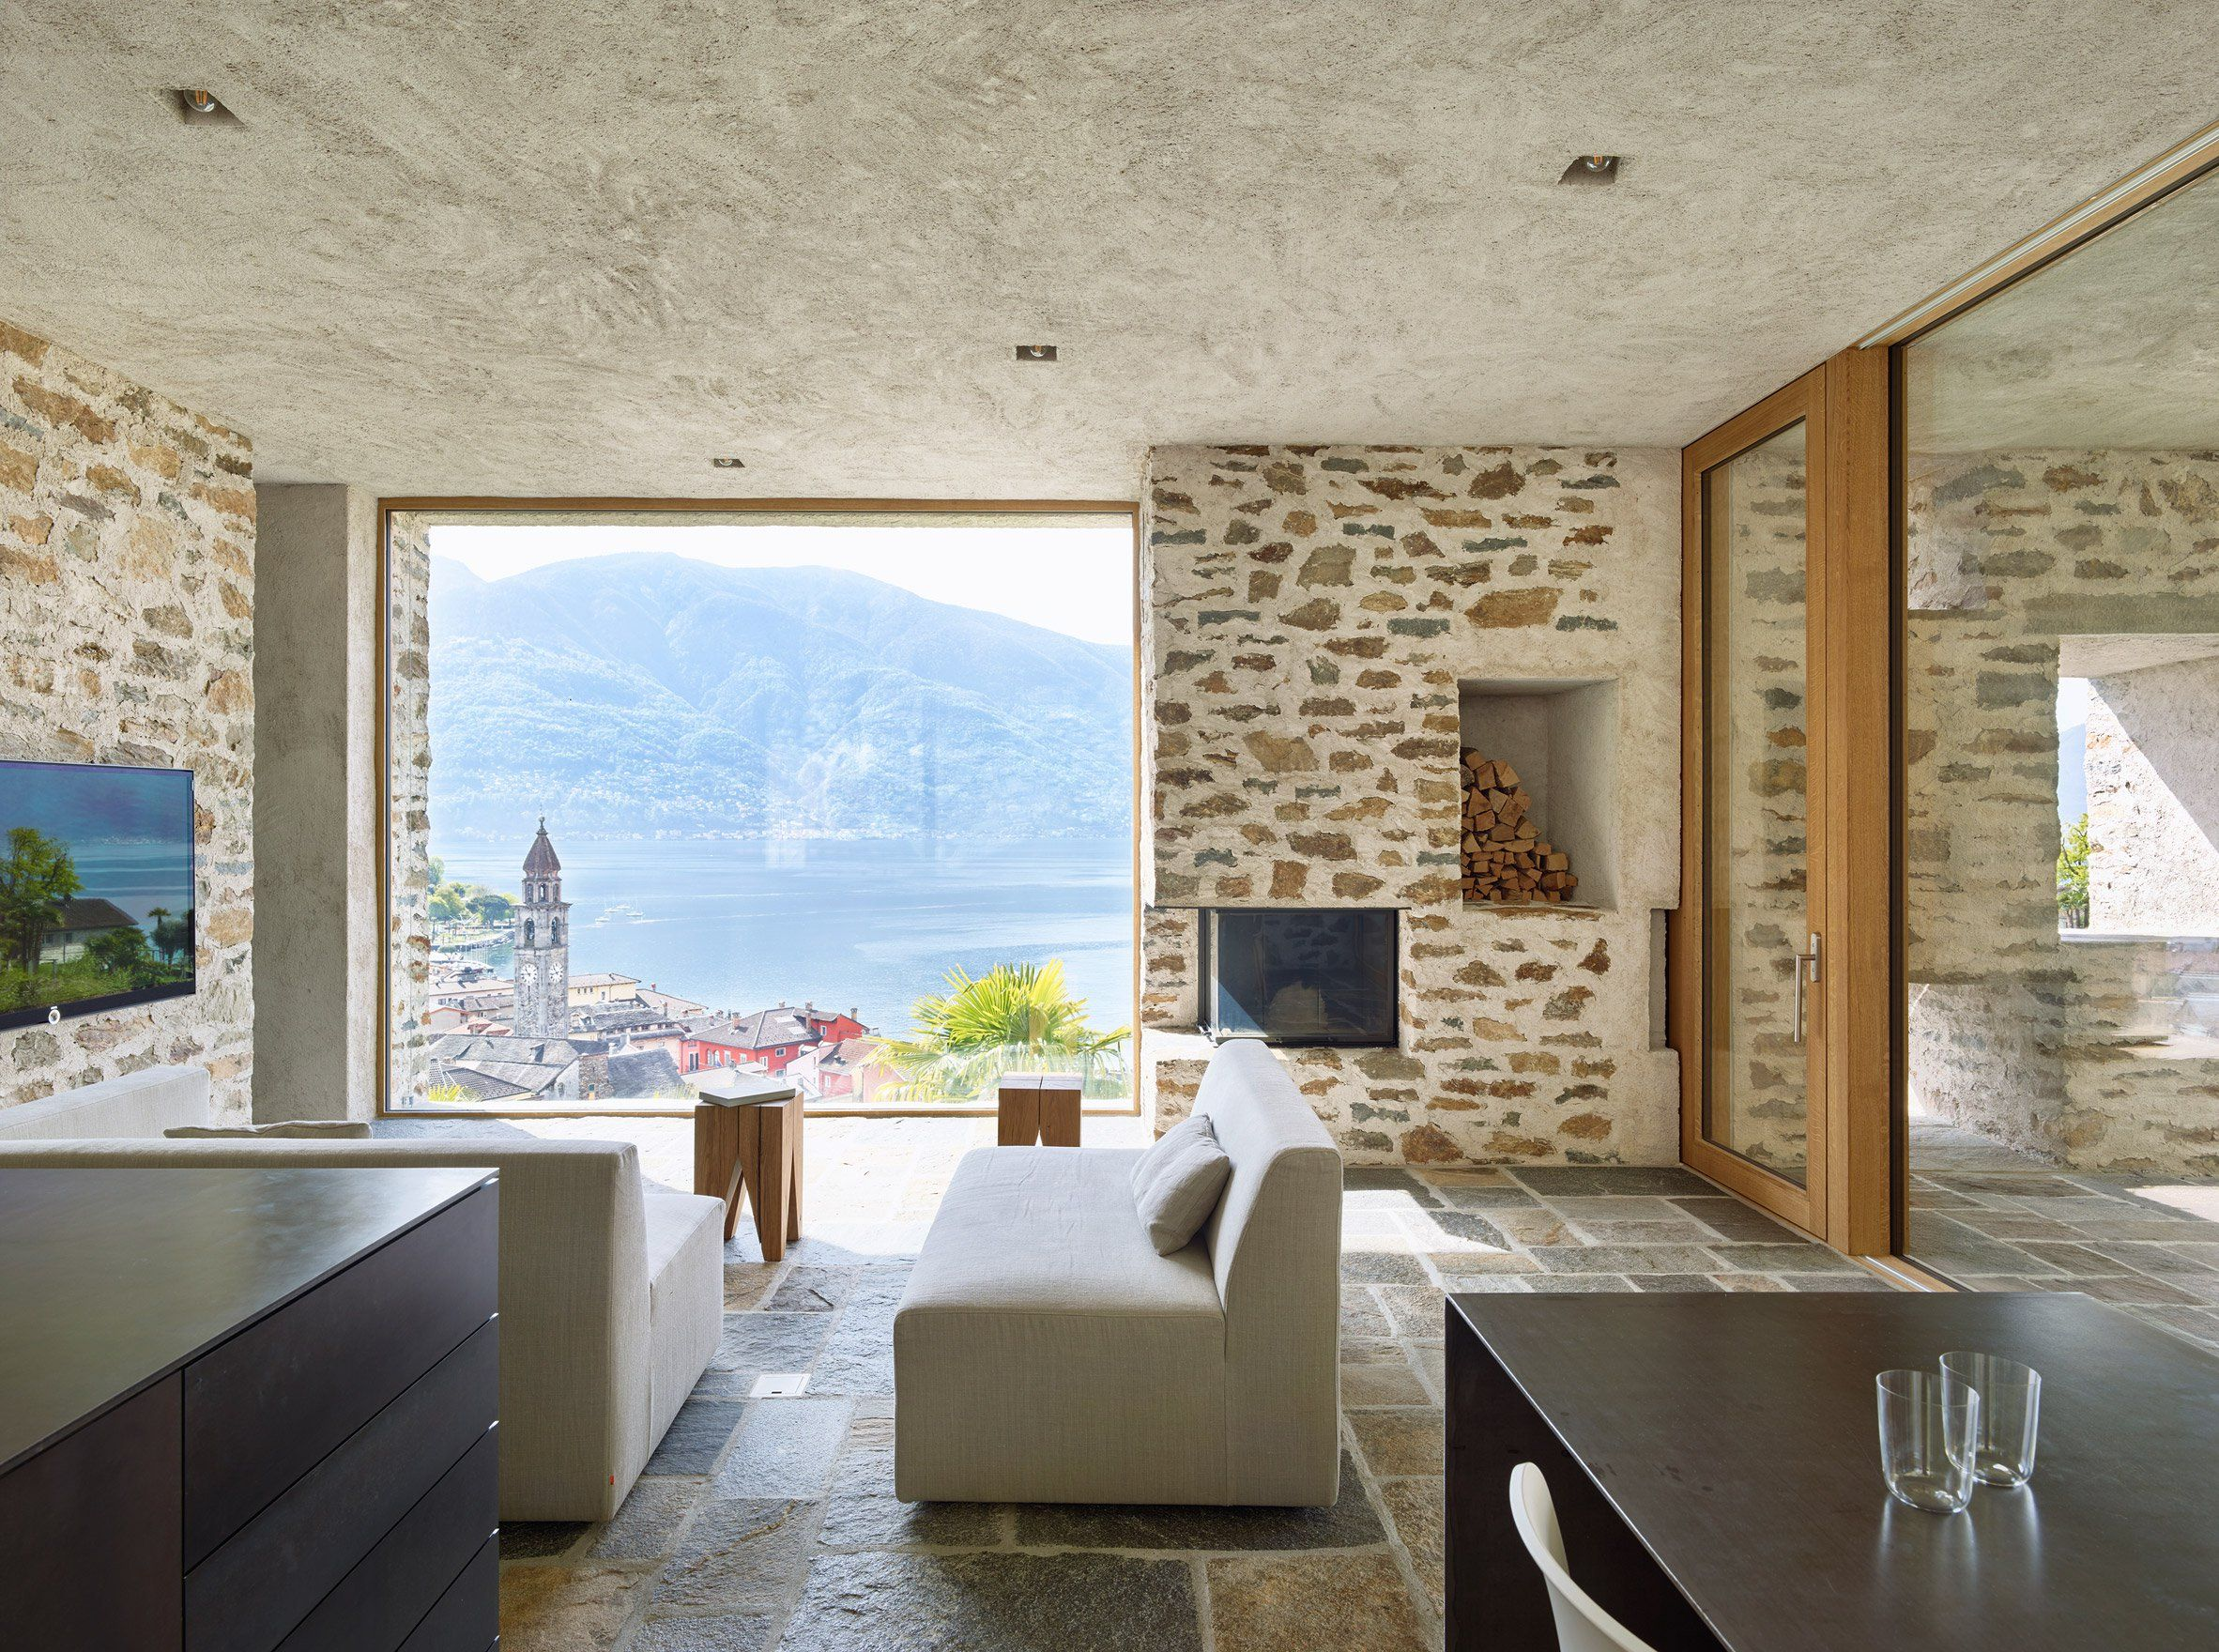 Wespi de Meuron Romeo uses stone and plaster for lakeside house ...